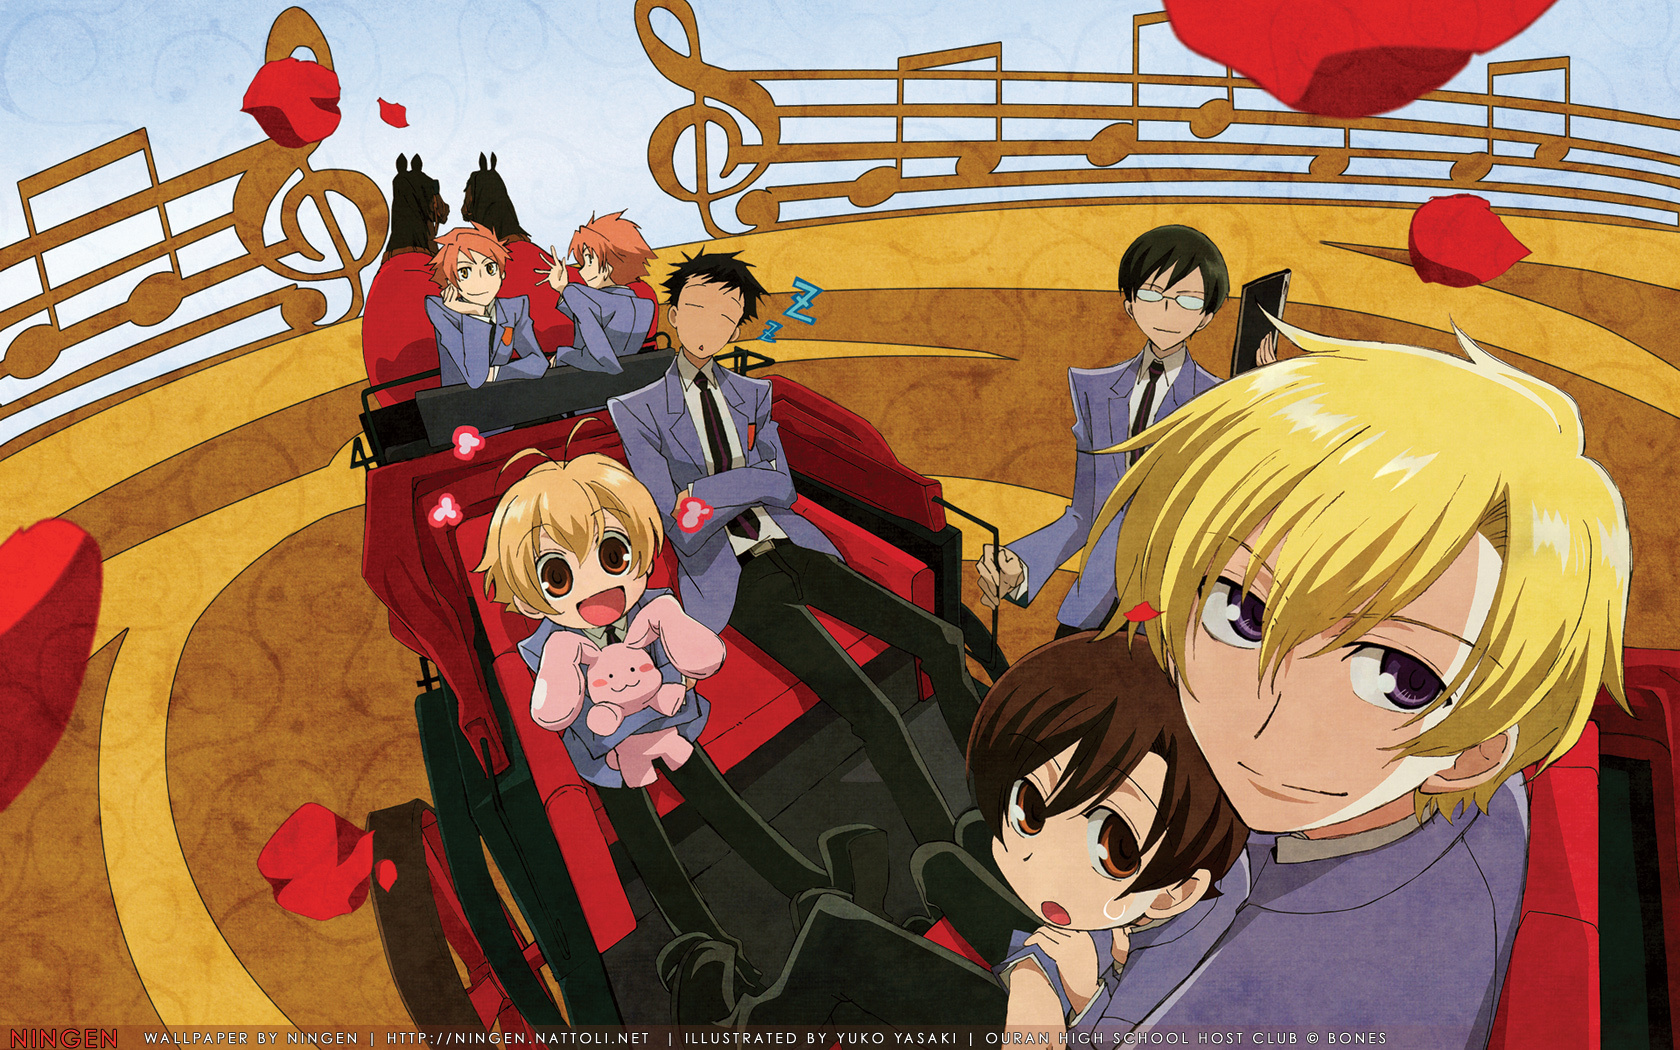 The Host Club - Ouran High School Host Club 1680x1050 1440x900 1280x800